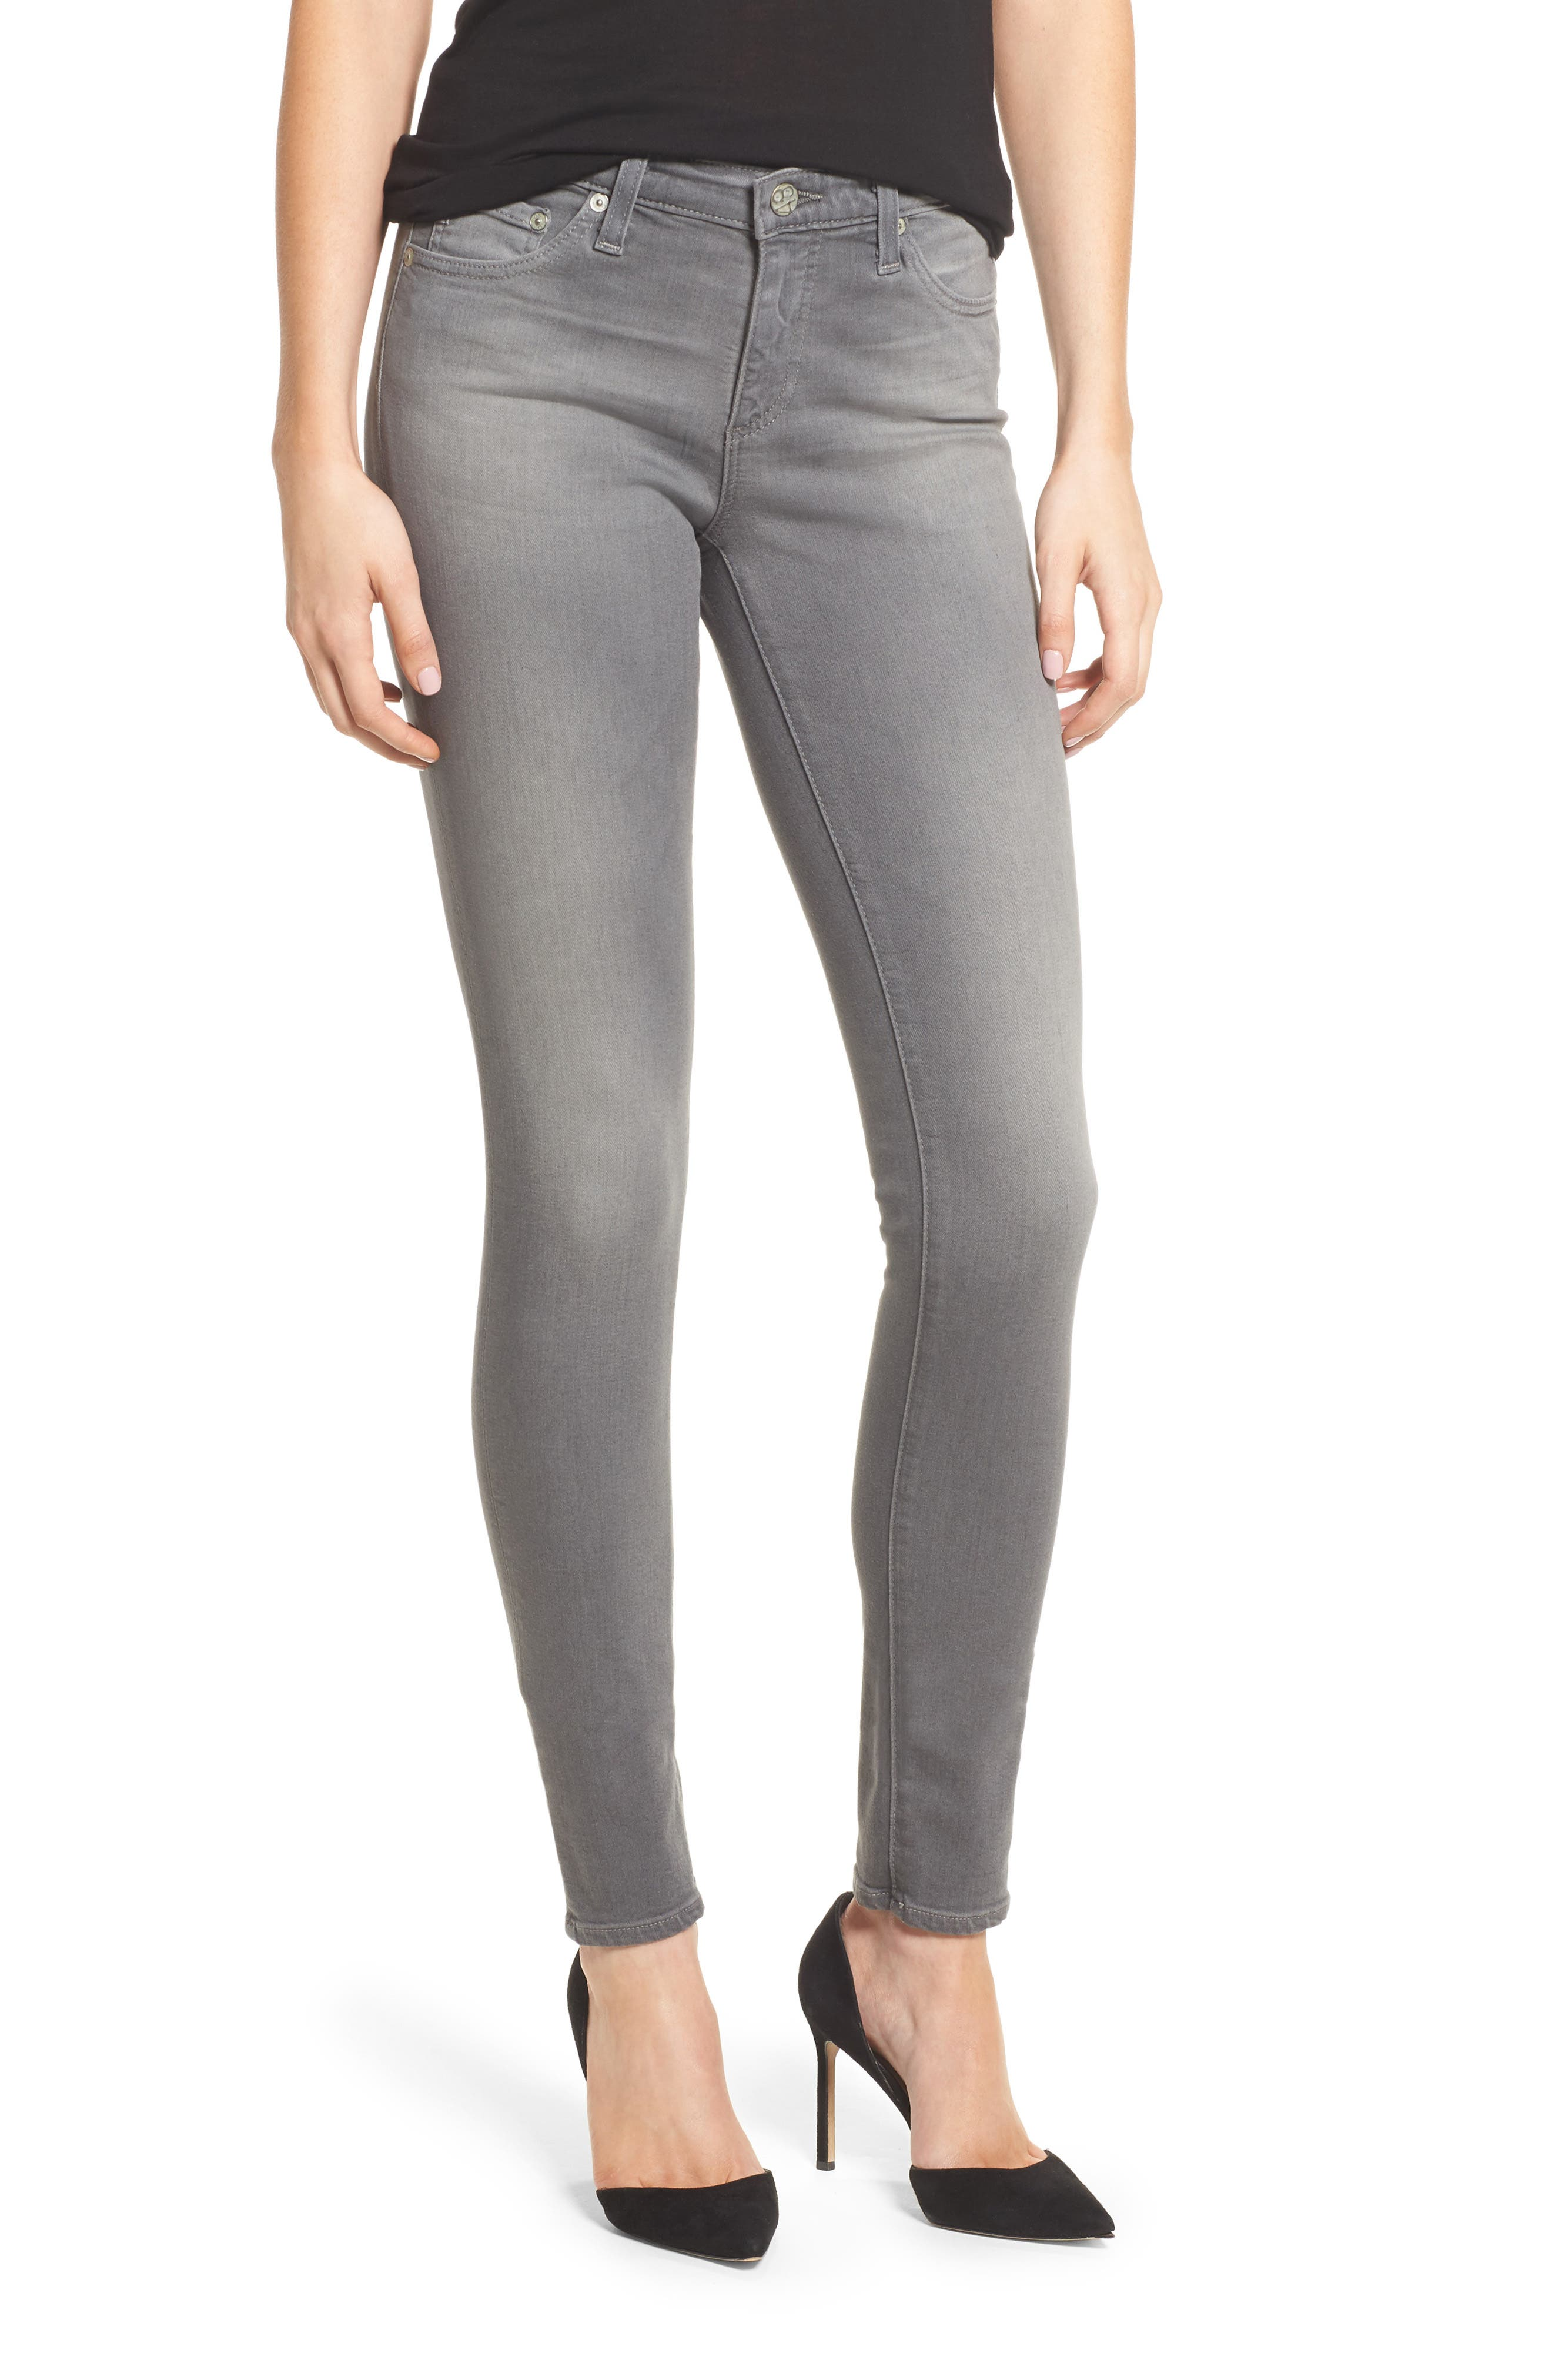 Main Image - AG The Legging Super Skinny Jeans (10 Years Grey Shadow)